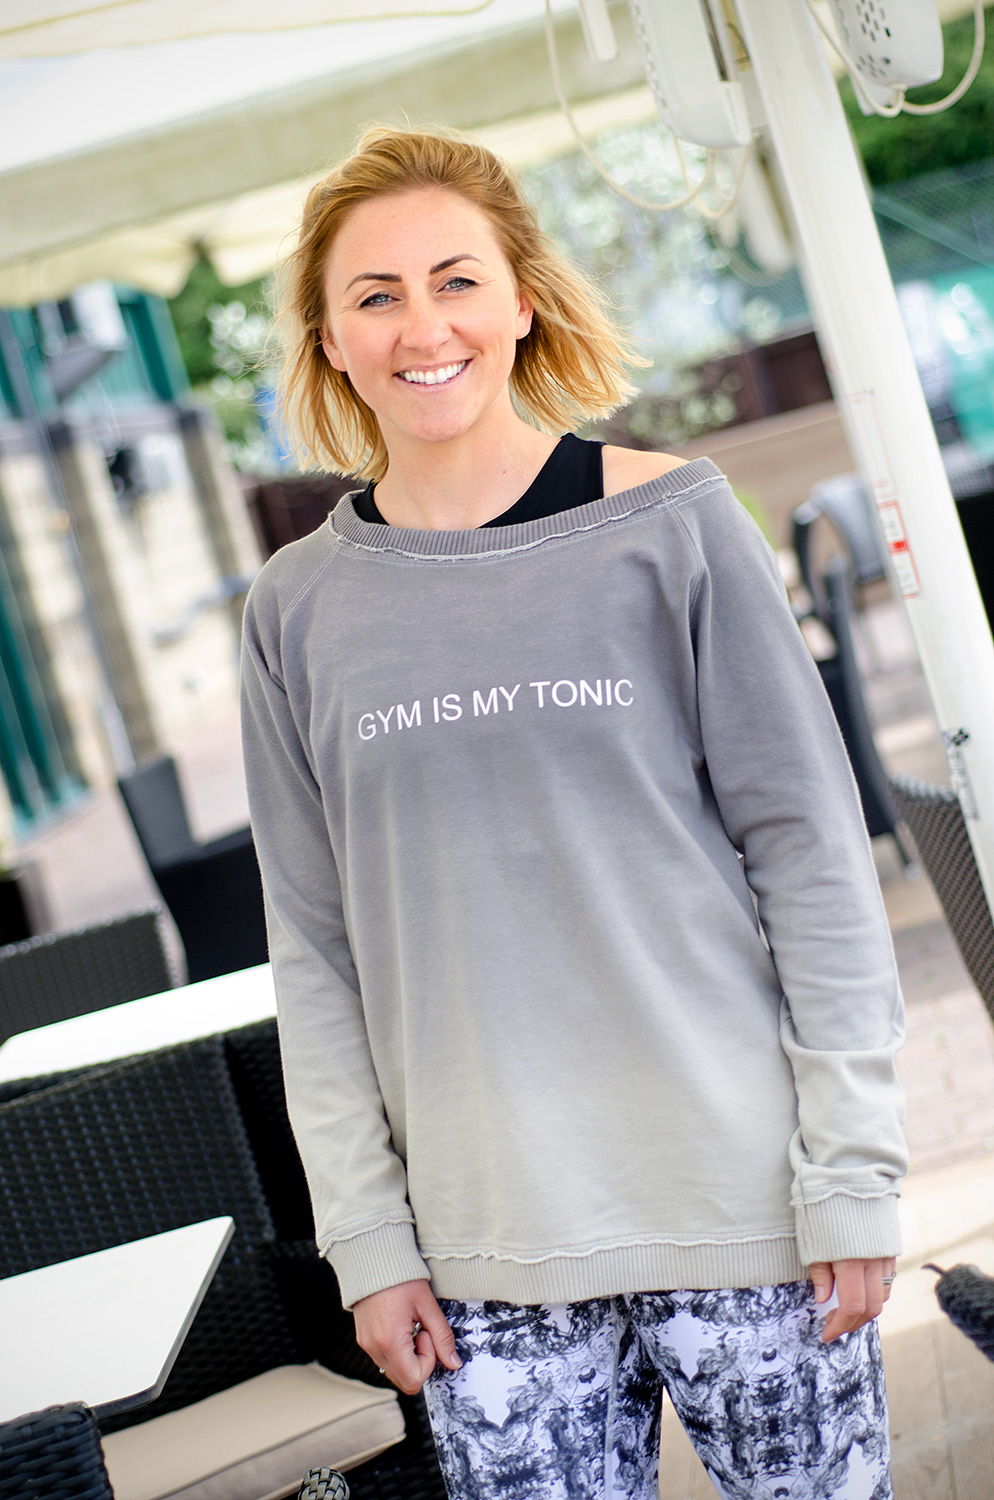 'Gym Is My Tonic' Sweatshirt: Small